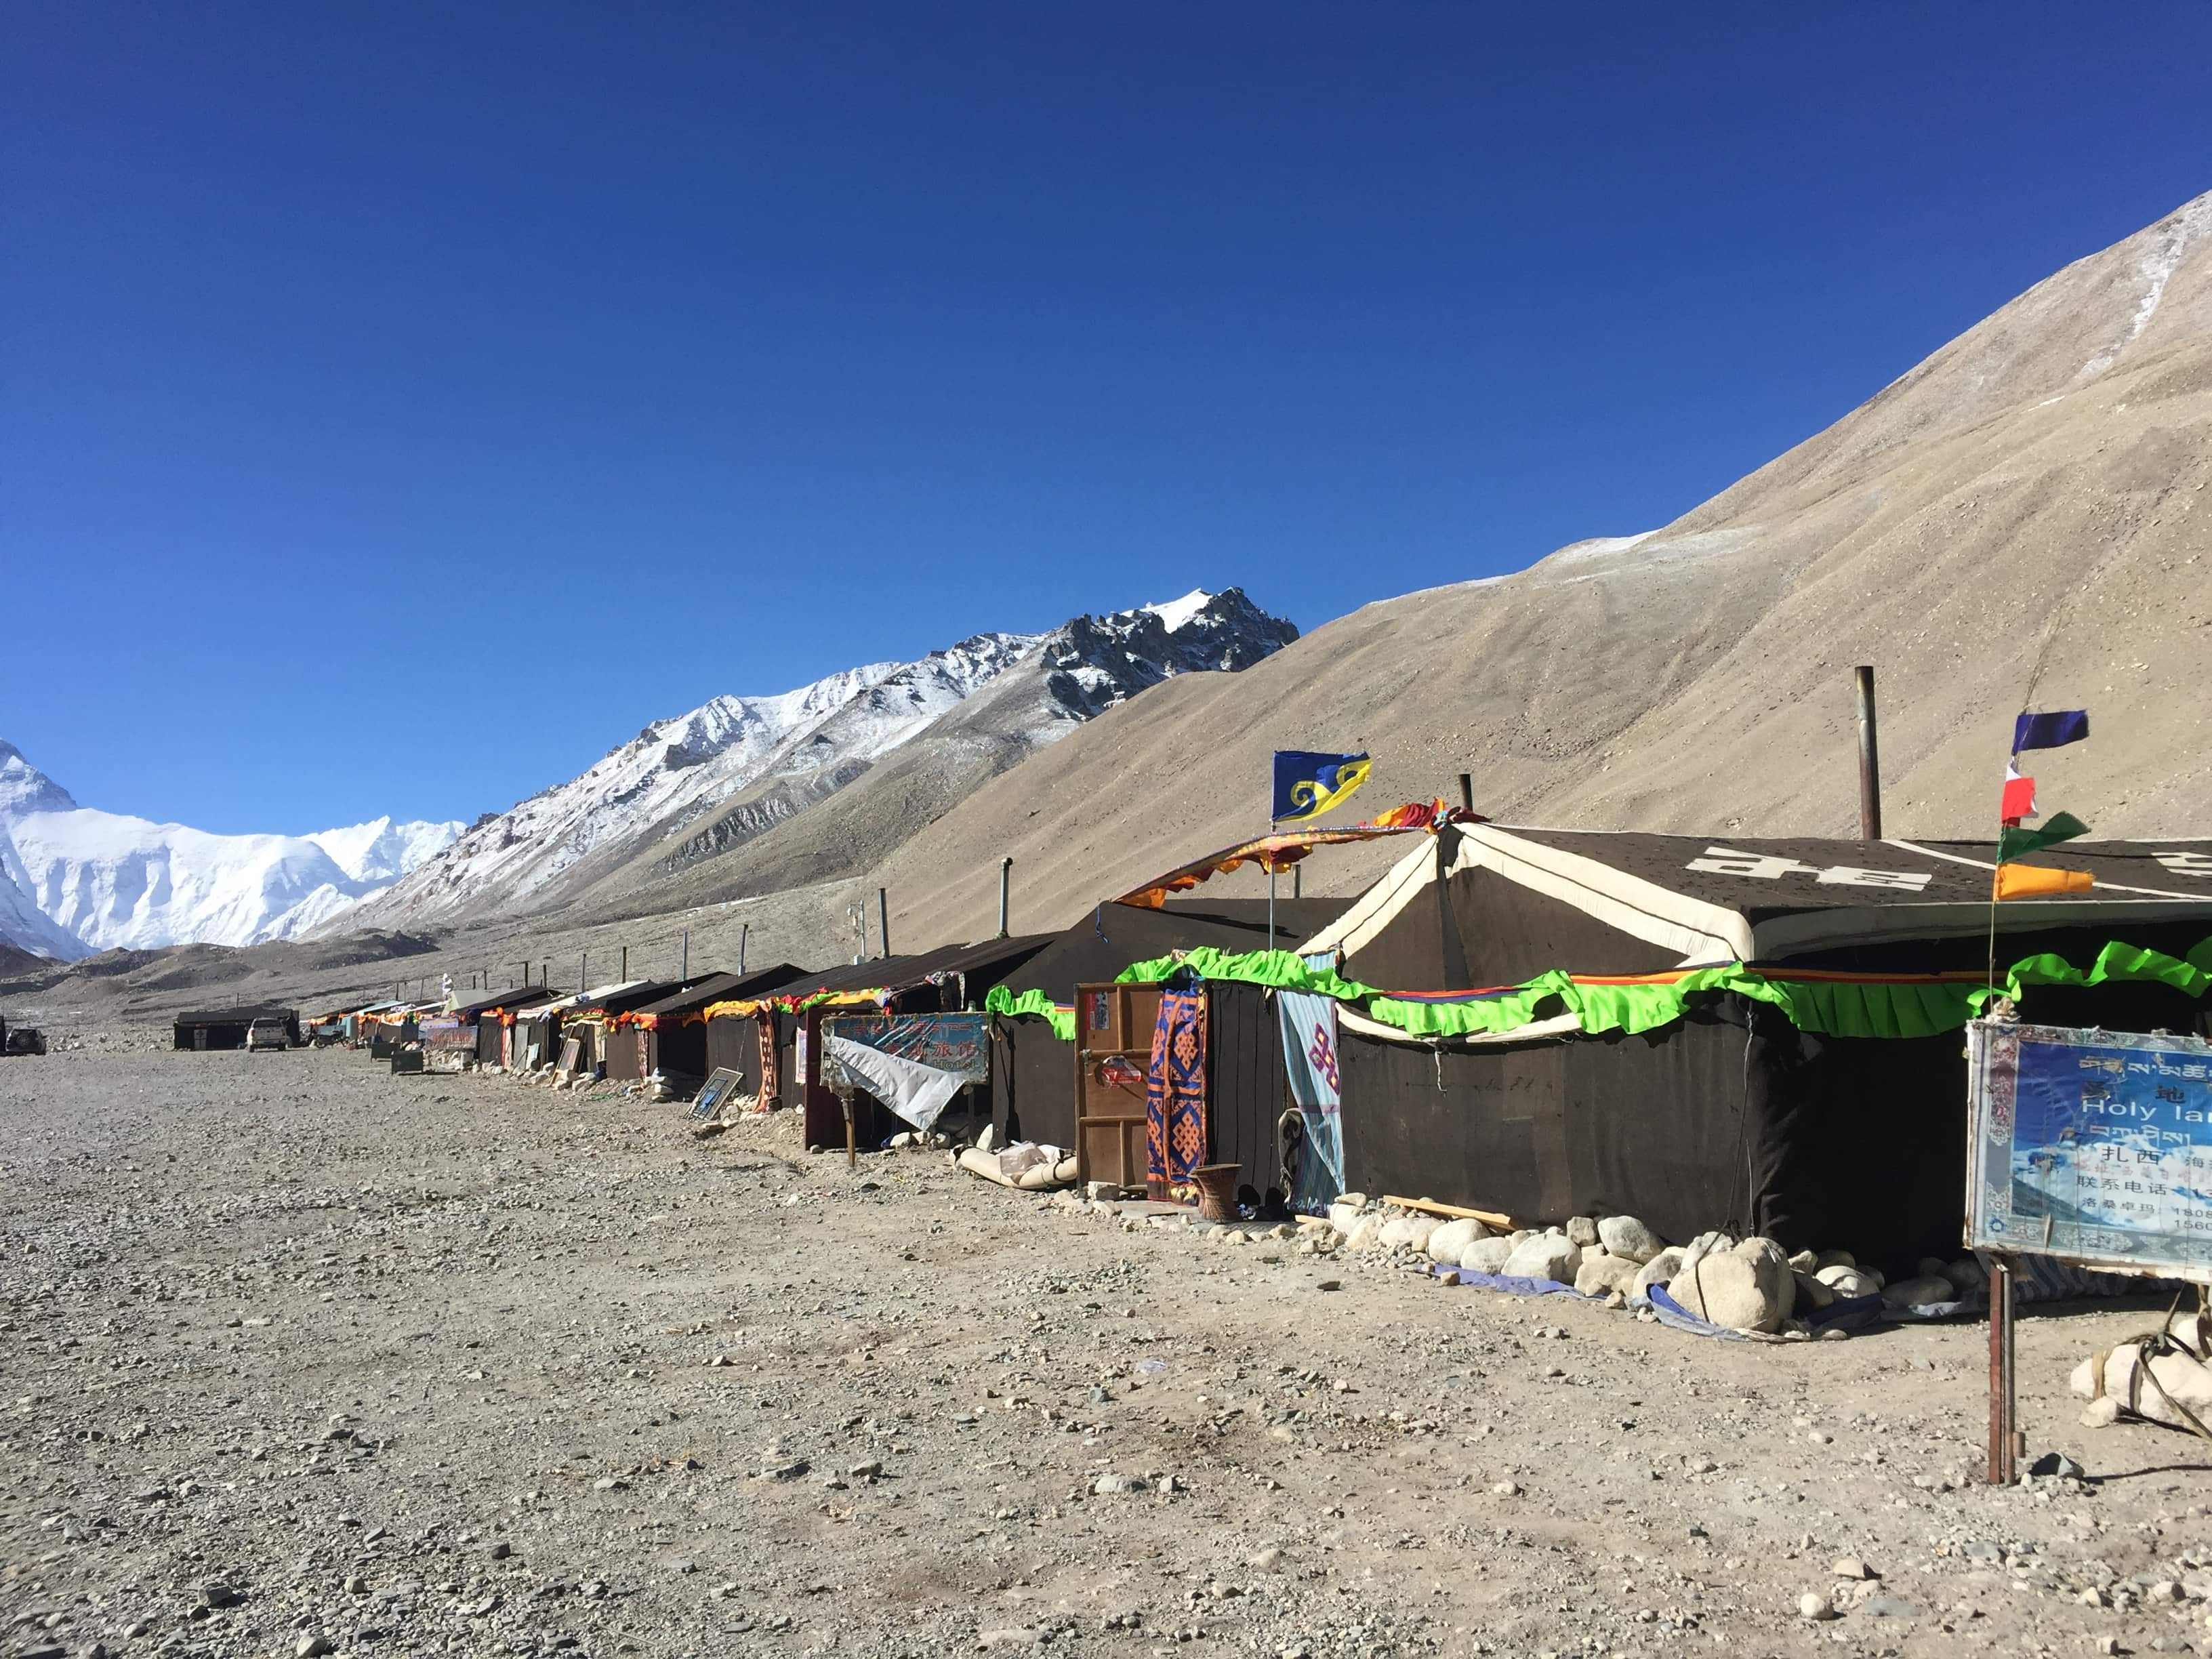 Everest Tent Camp in Tibet